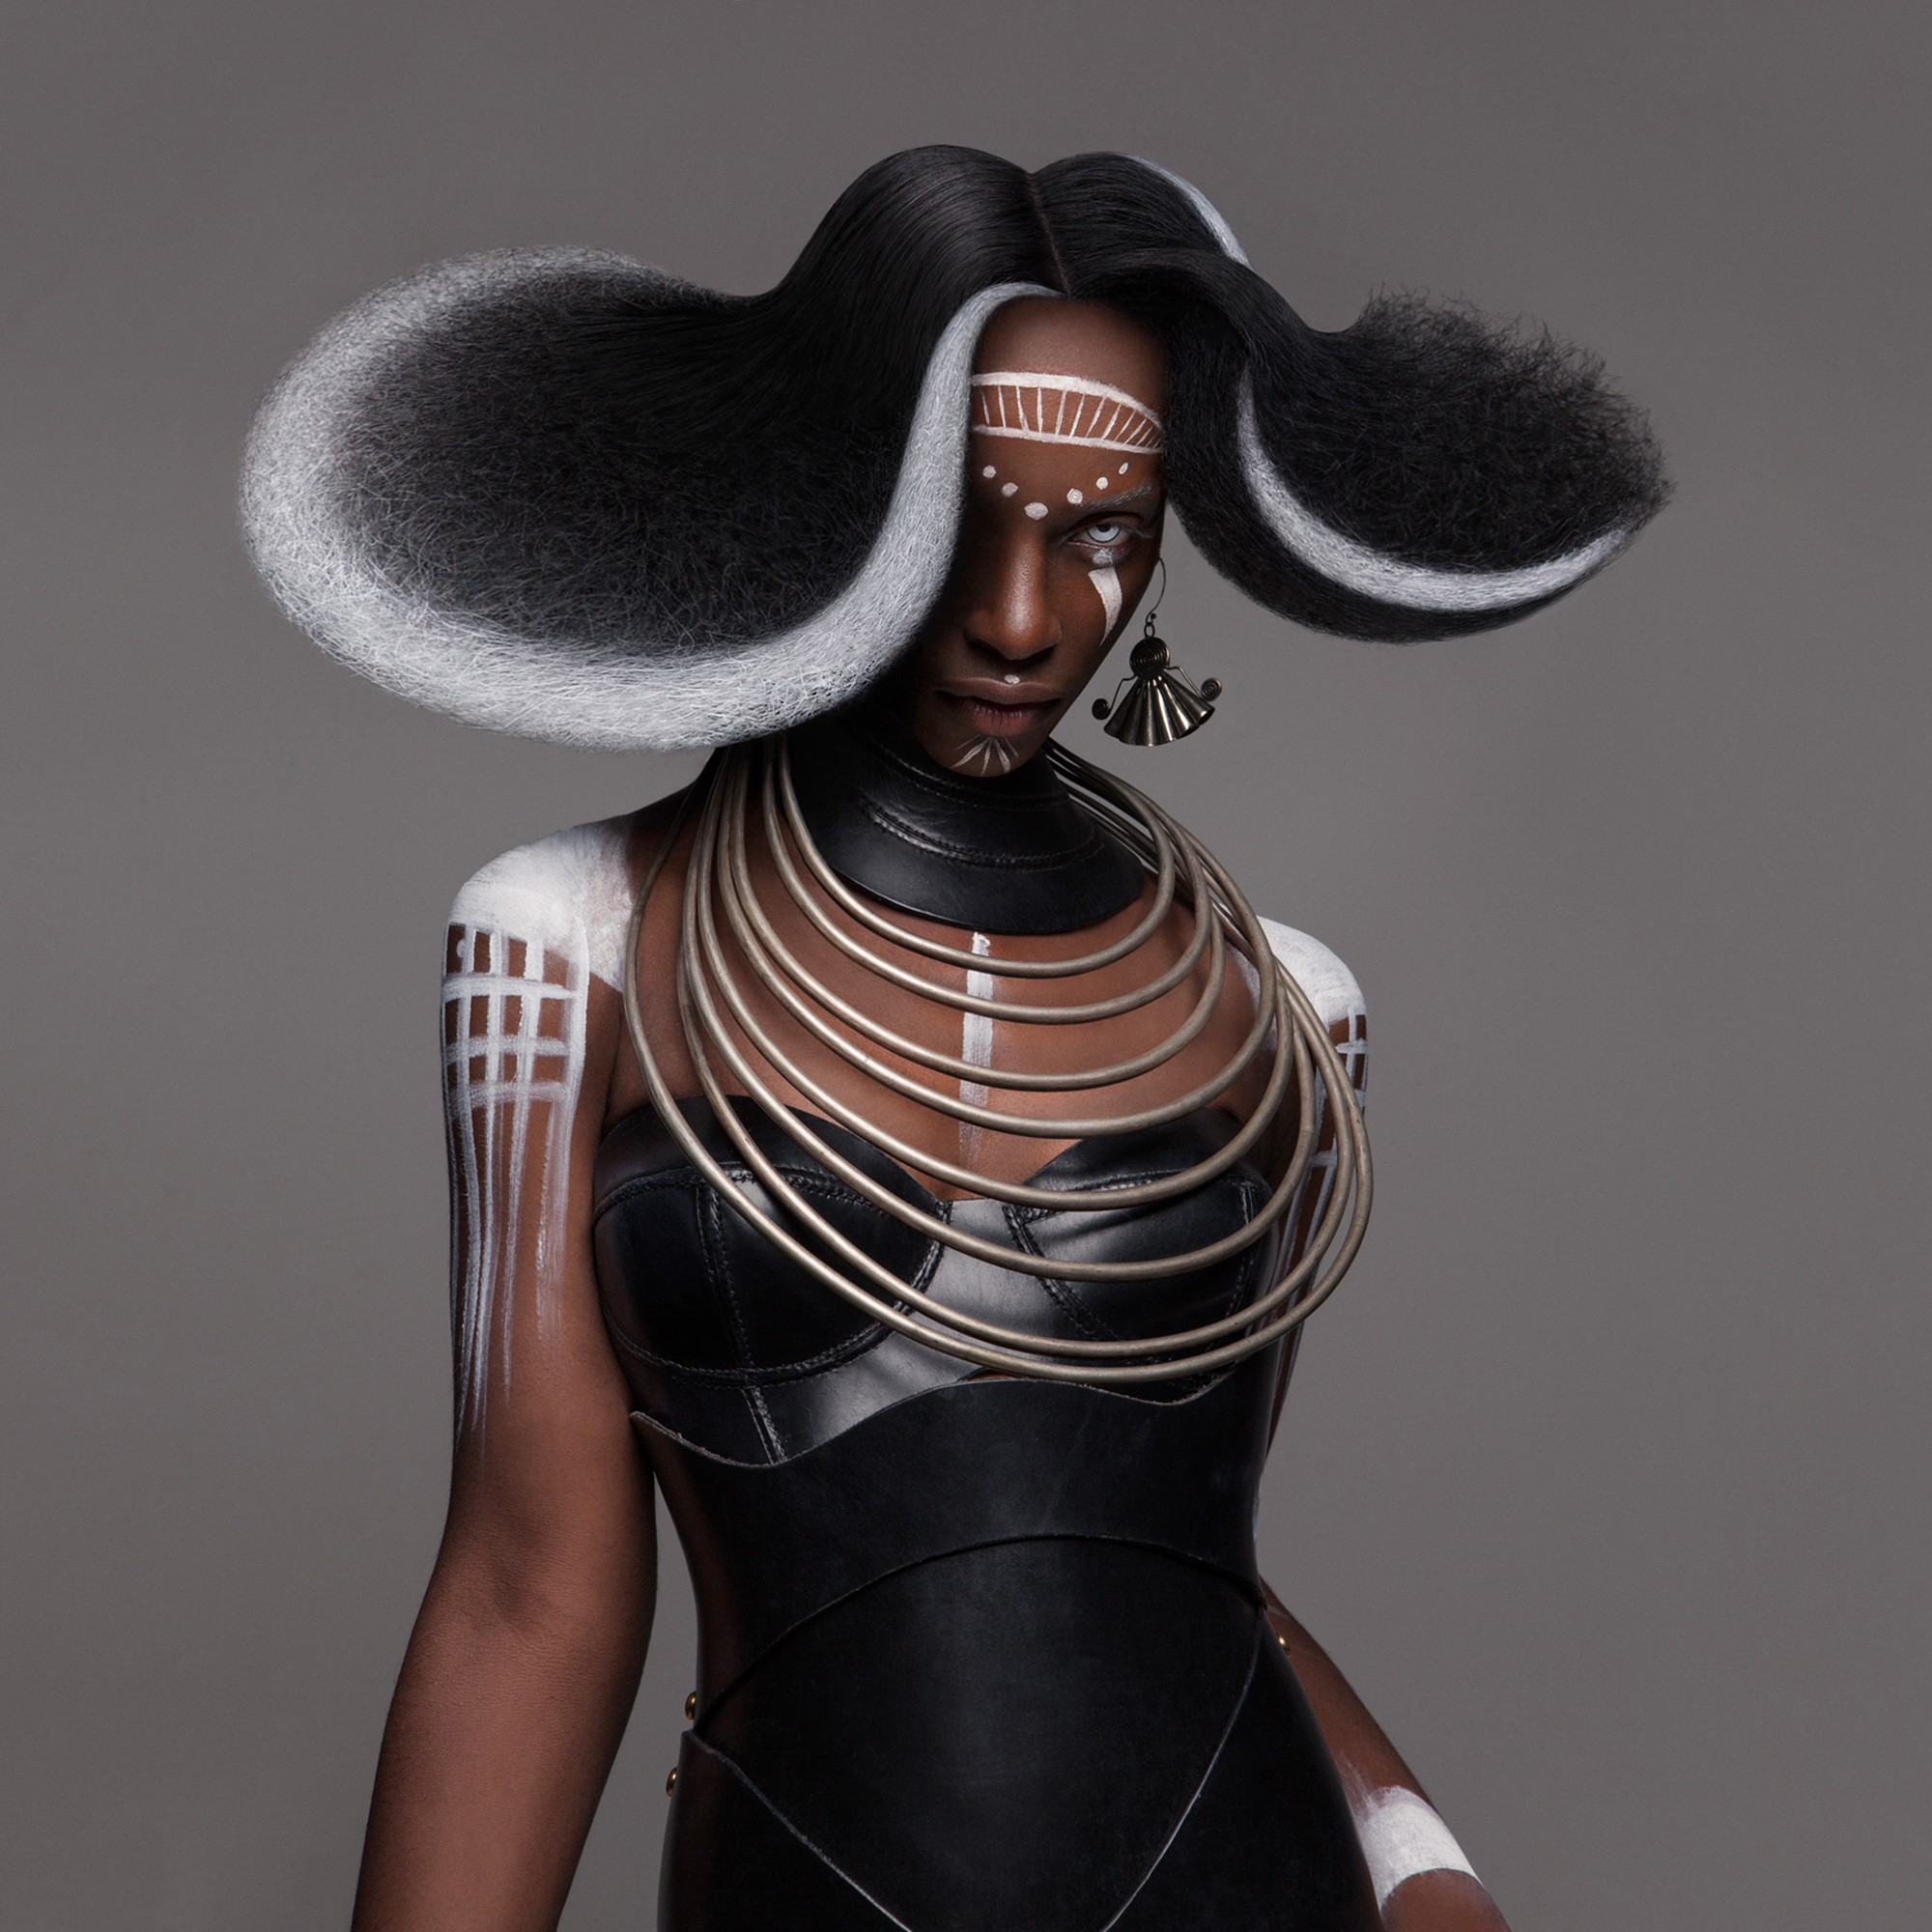 Luke Nugent - British Hair Awards 2016 - Afro Finalist Collection - abstract hair cover